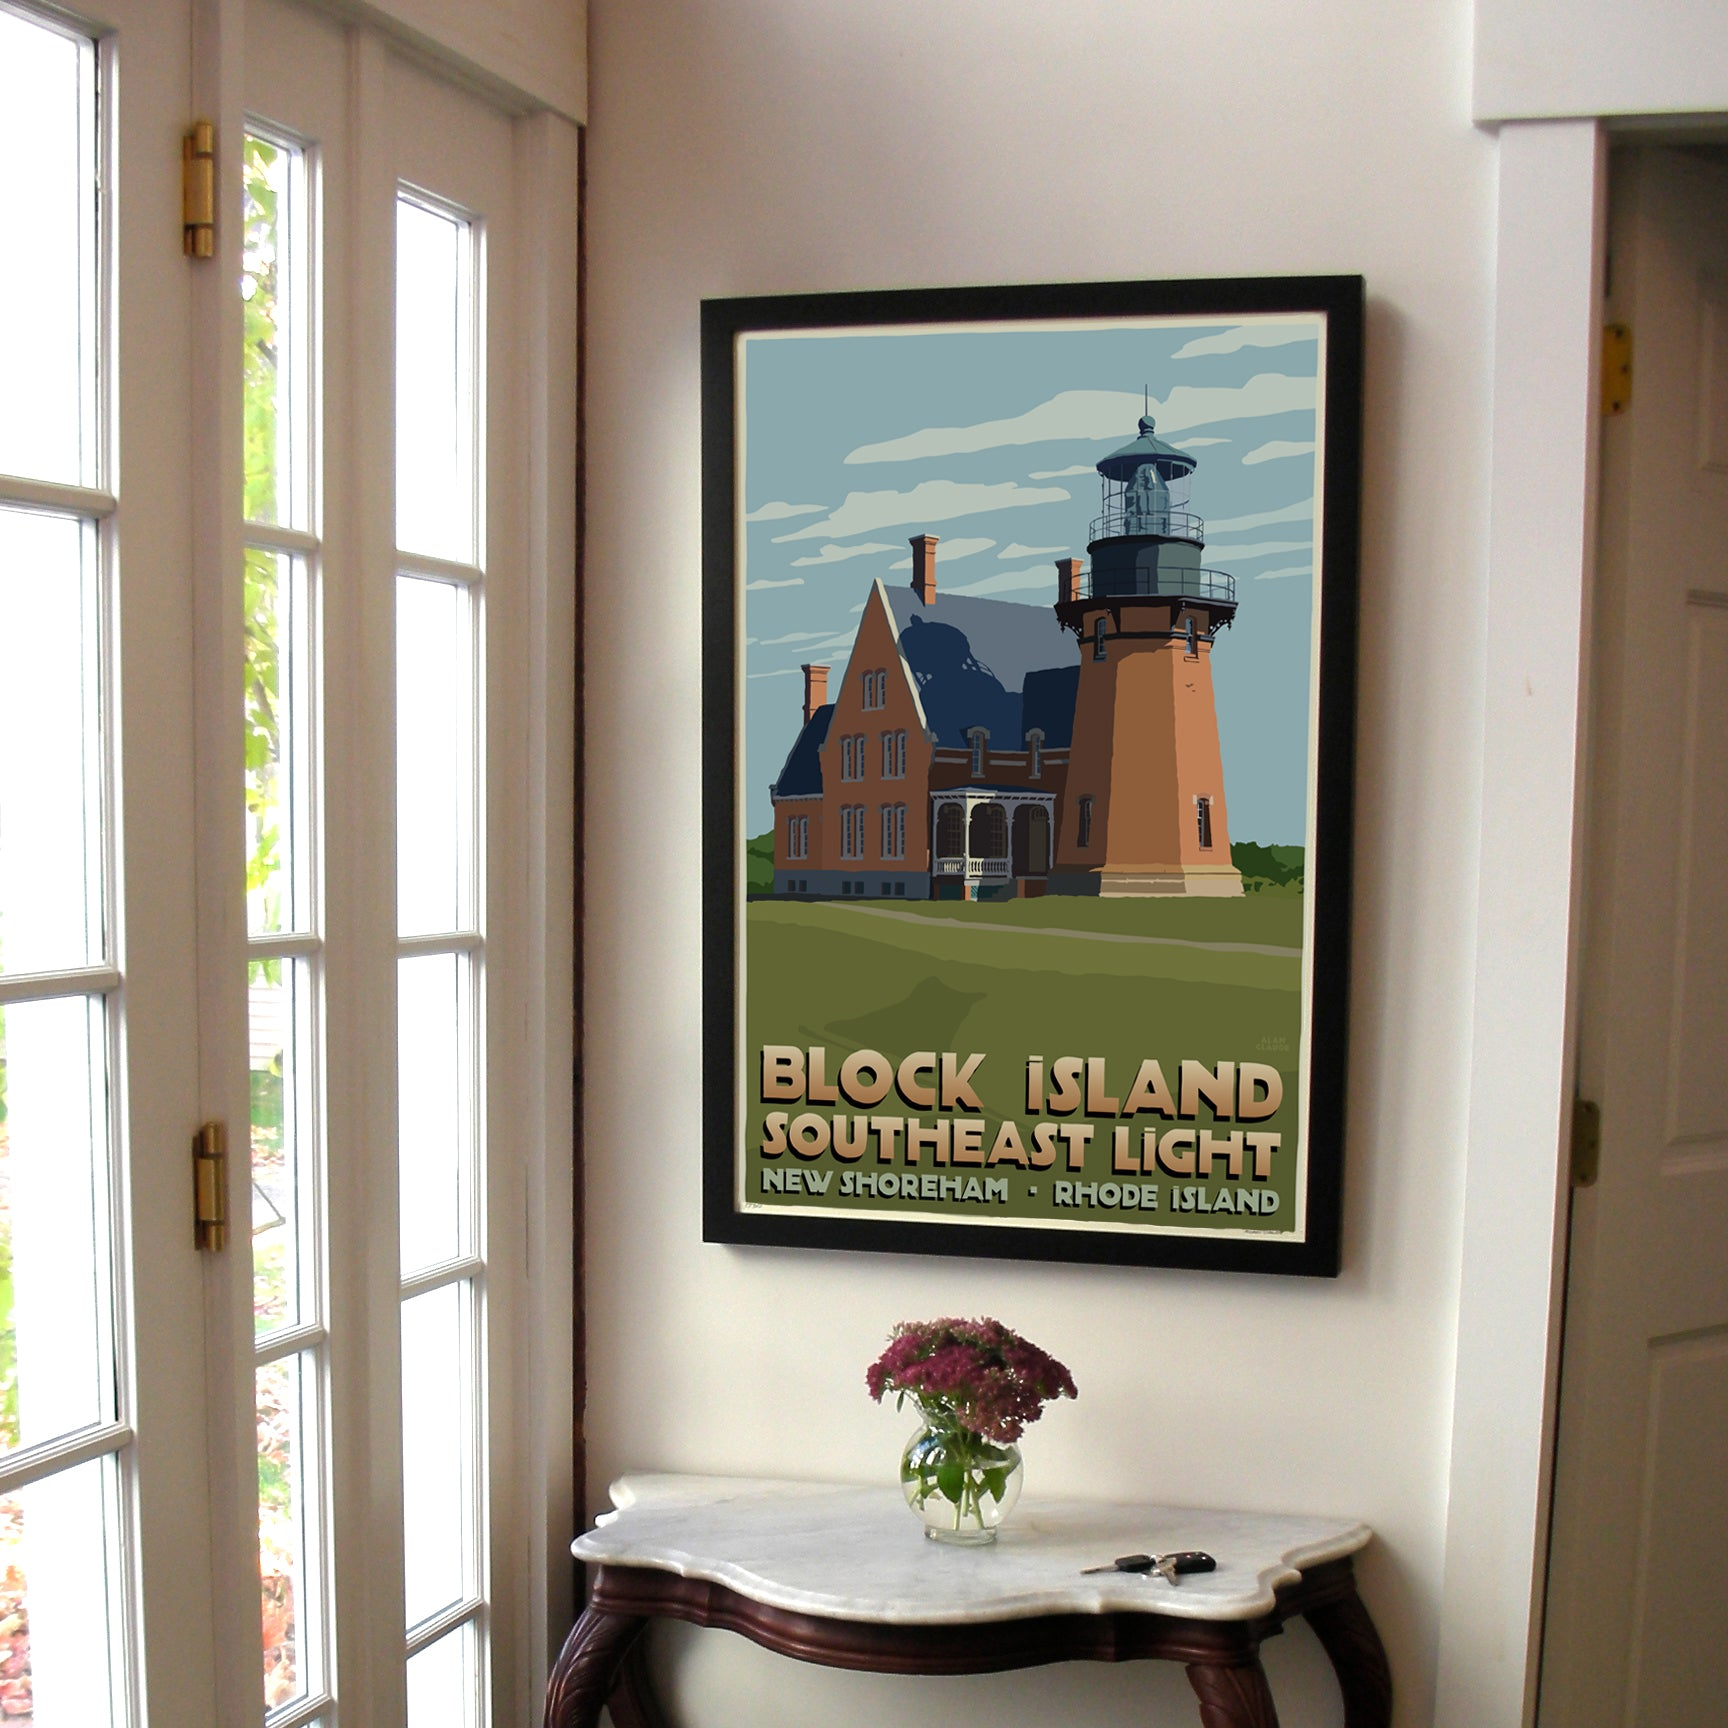 "Block Island Southeast Light Art Print 24"" x 36"" Framed Travel Poster - Rhode Island"